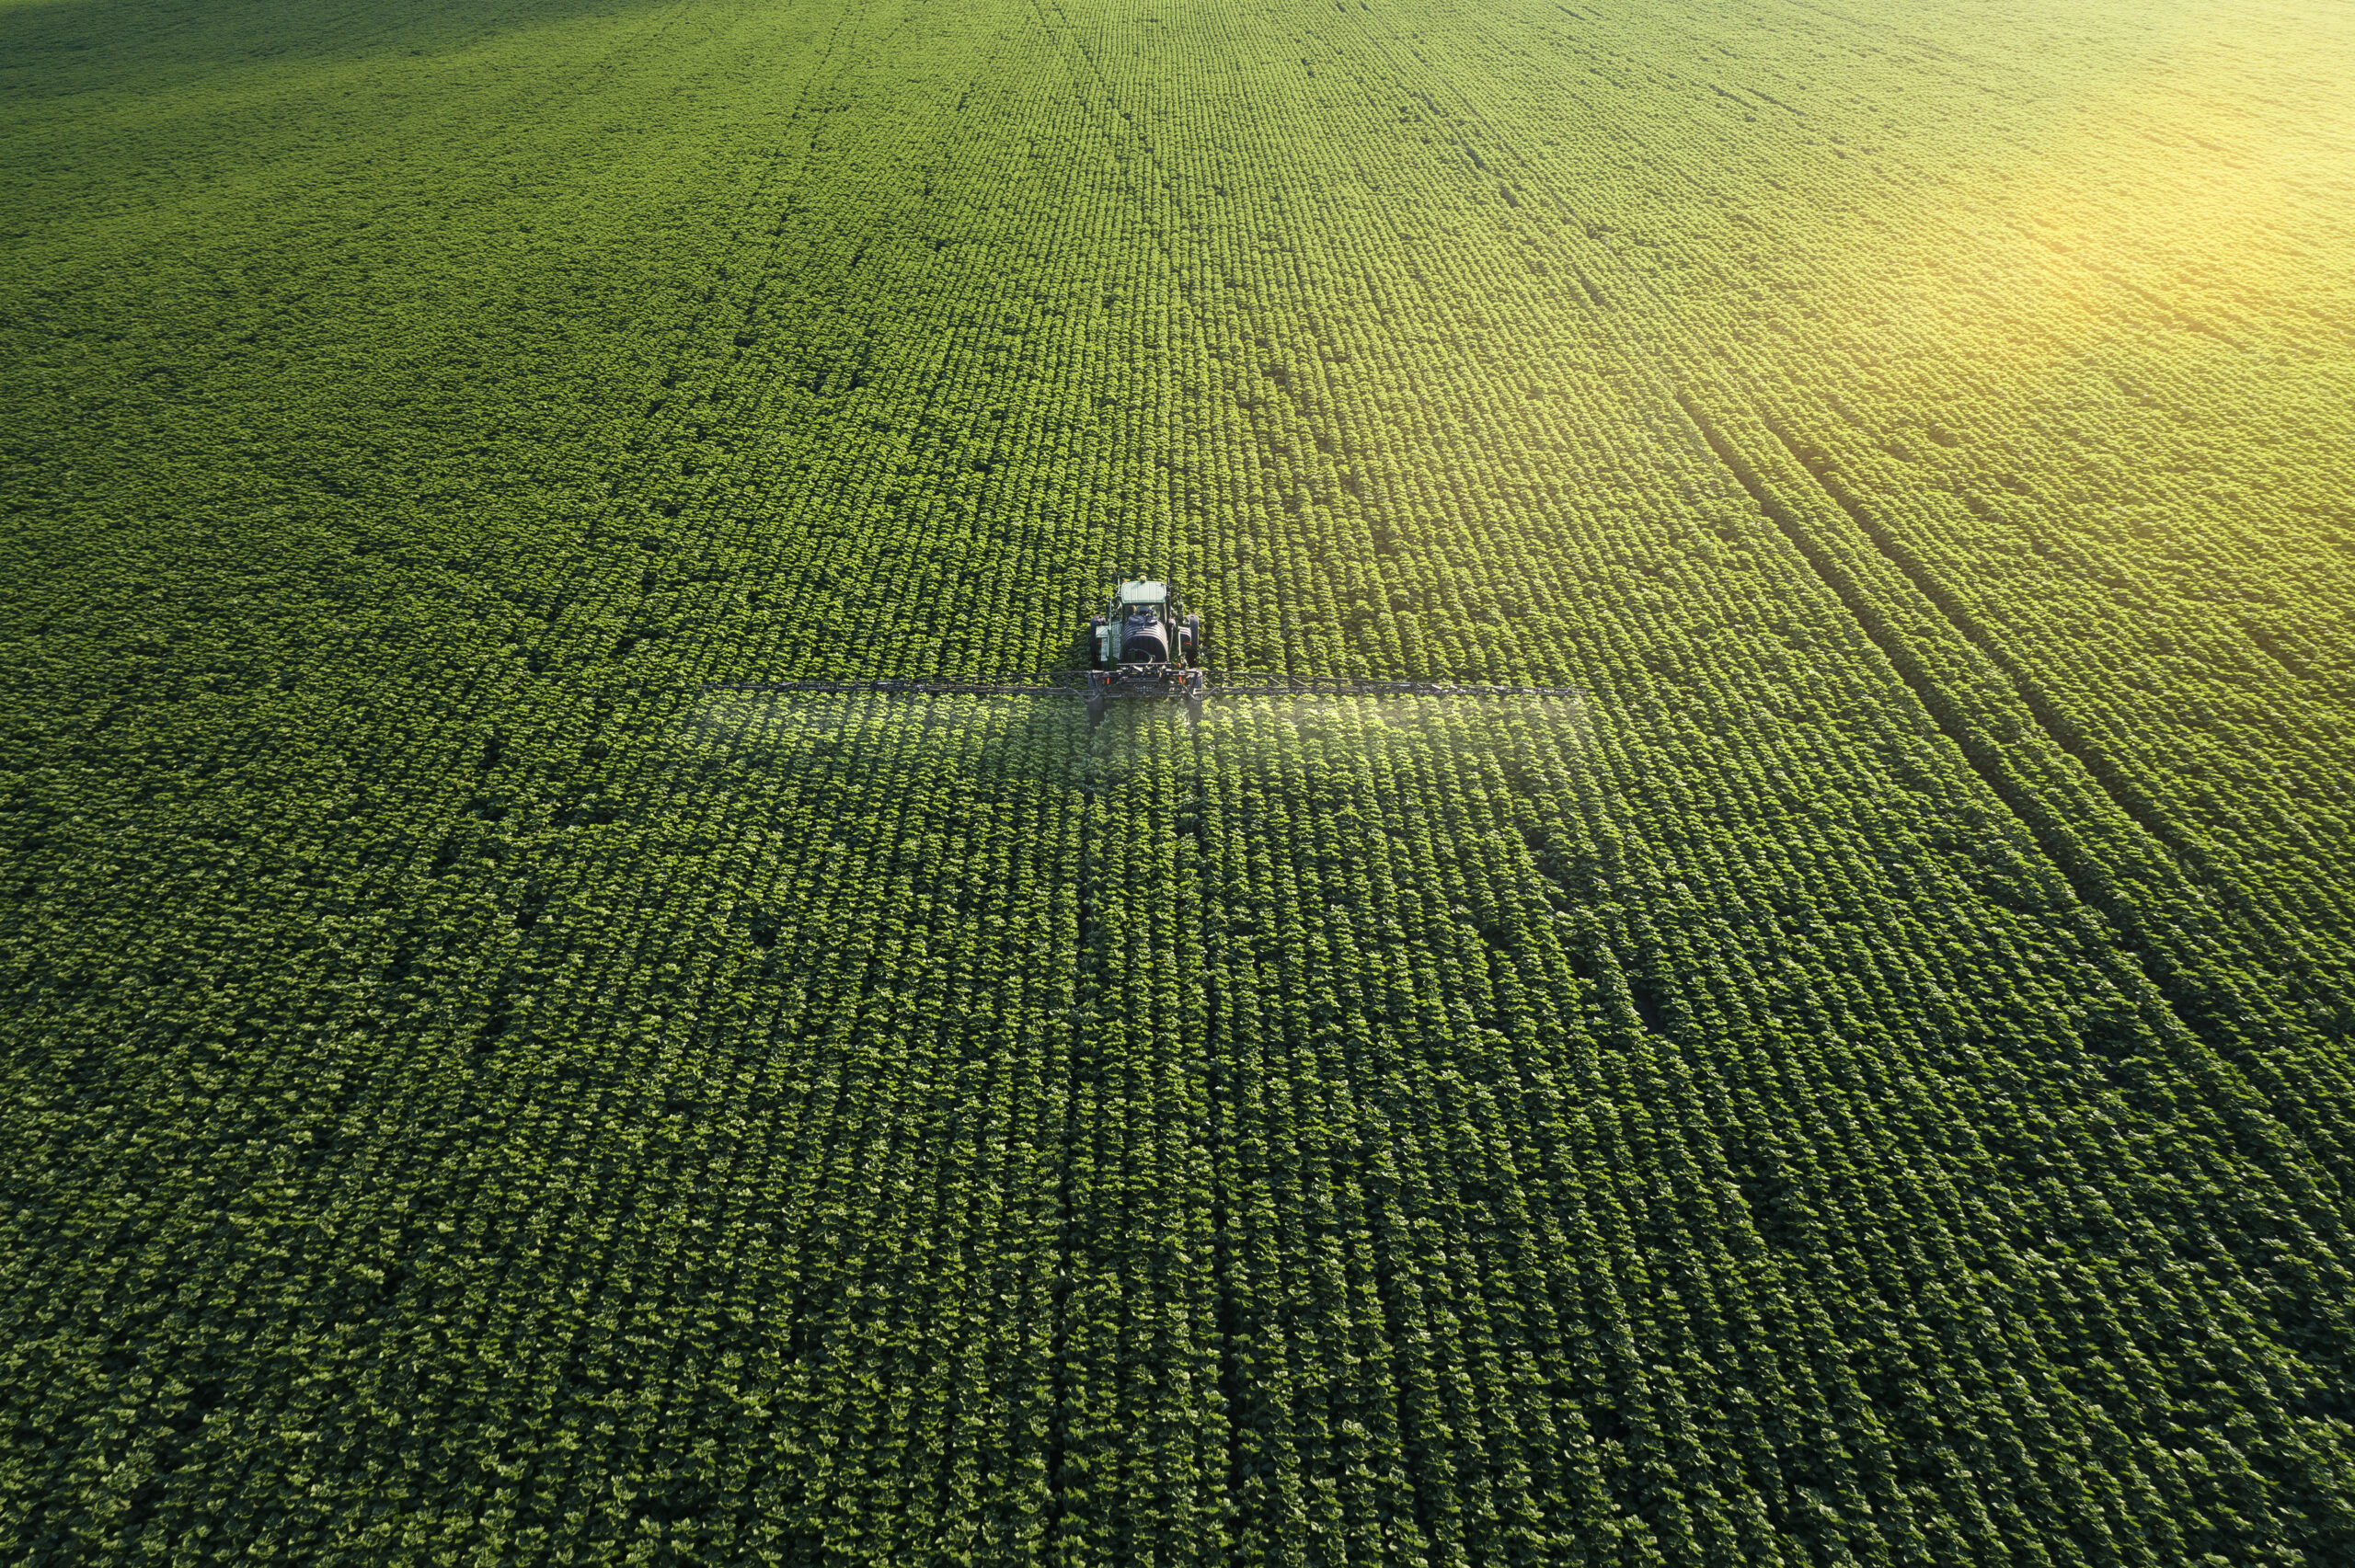 We cannot address the climate crisis without considering how we manage land to produce food